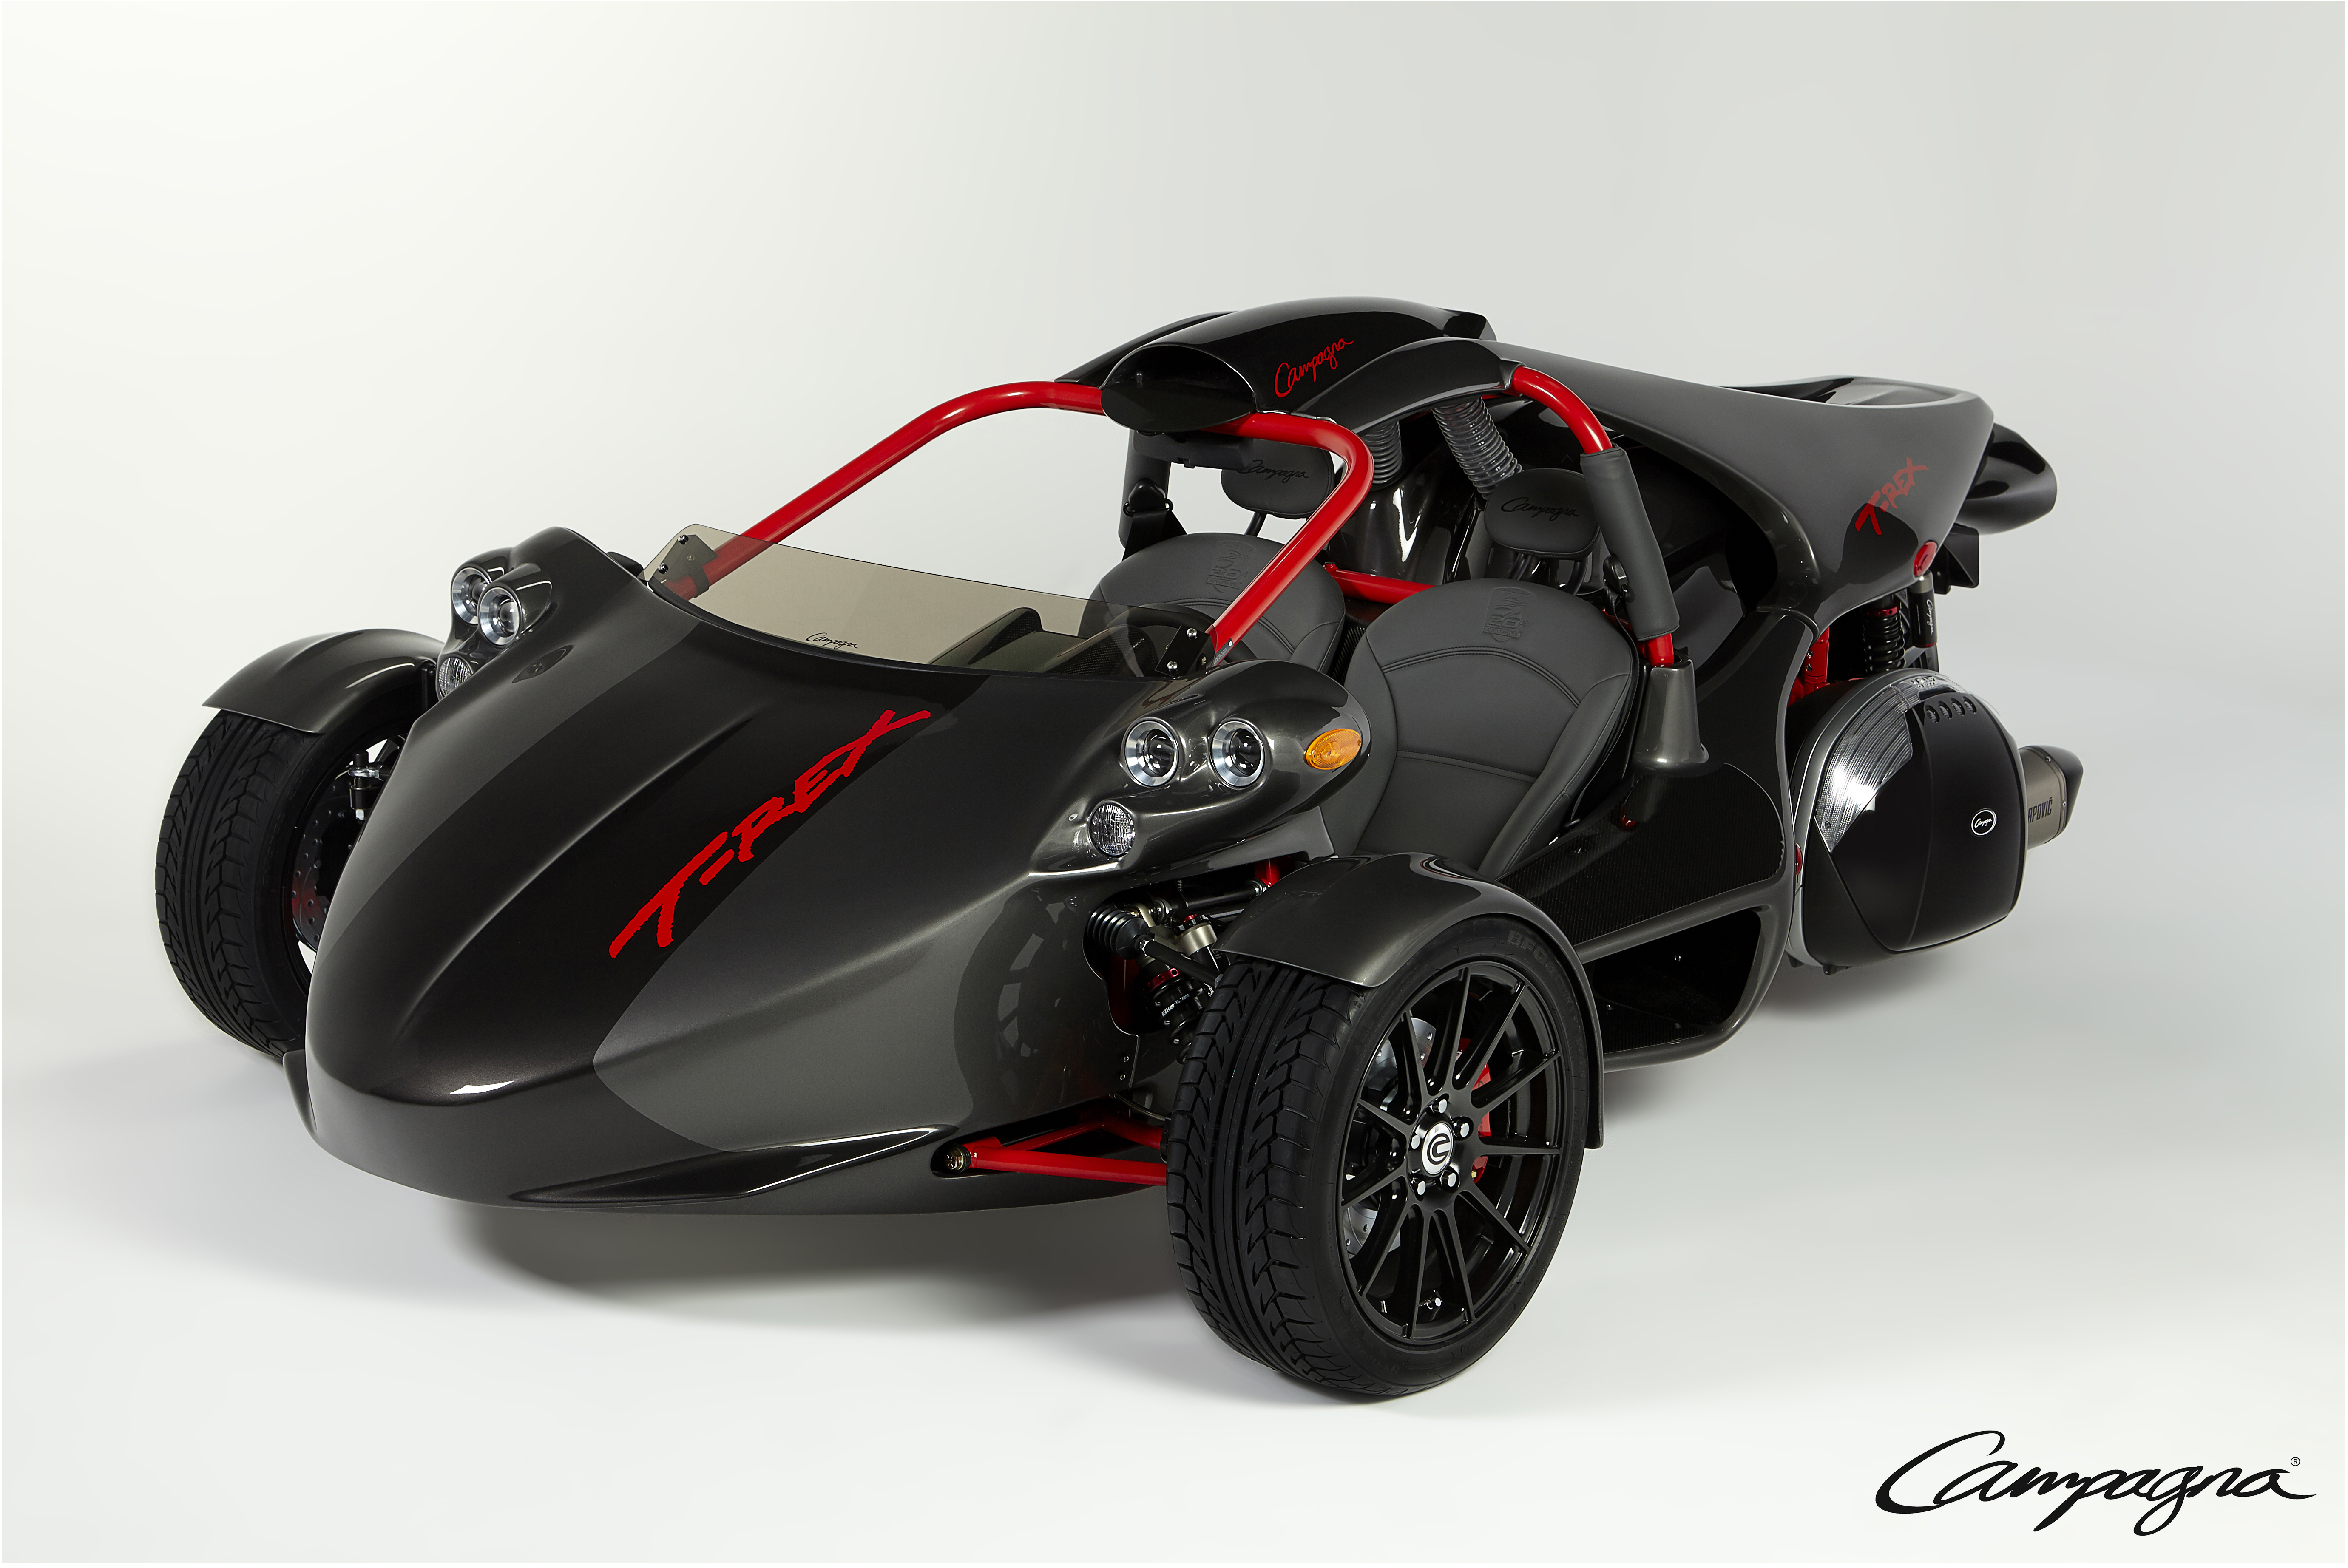 20th Anniversary T-REX Limited Edition